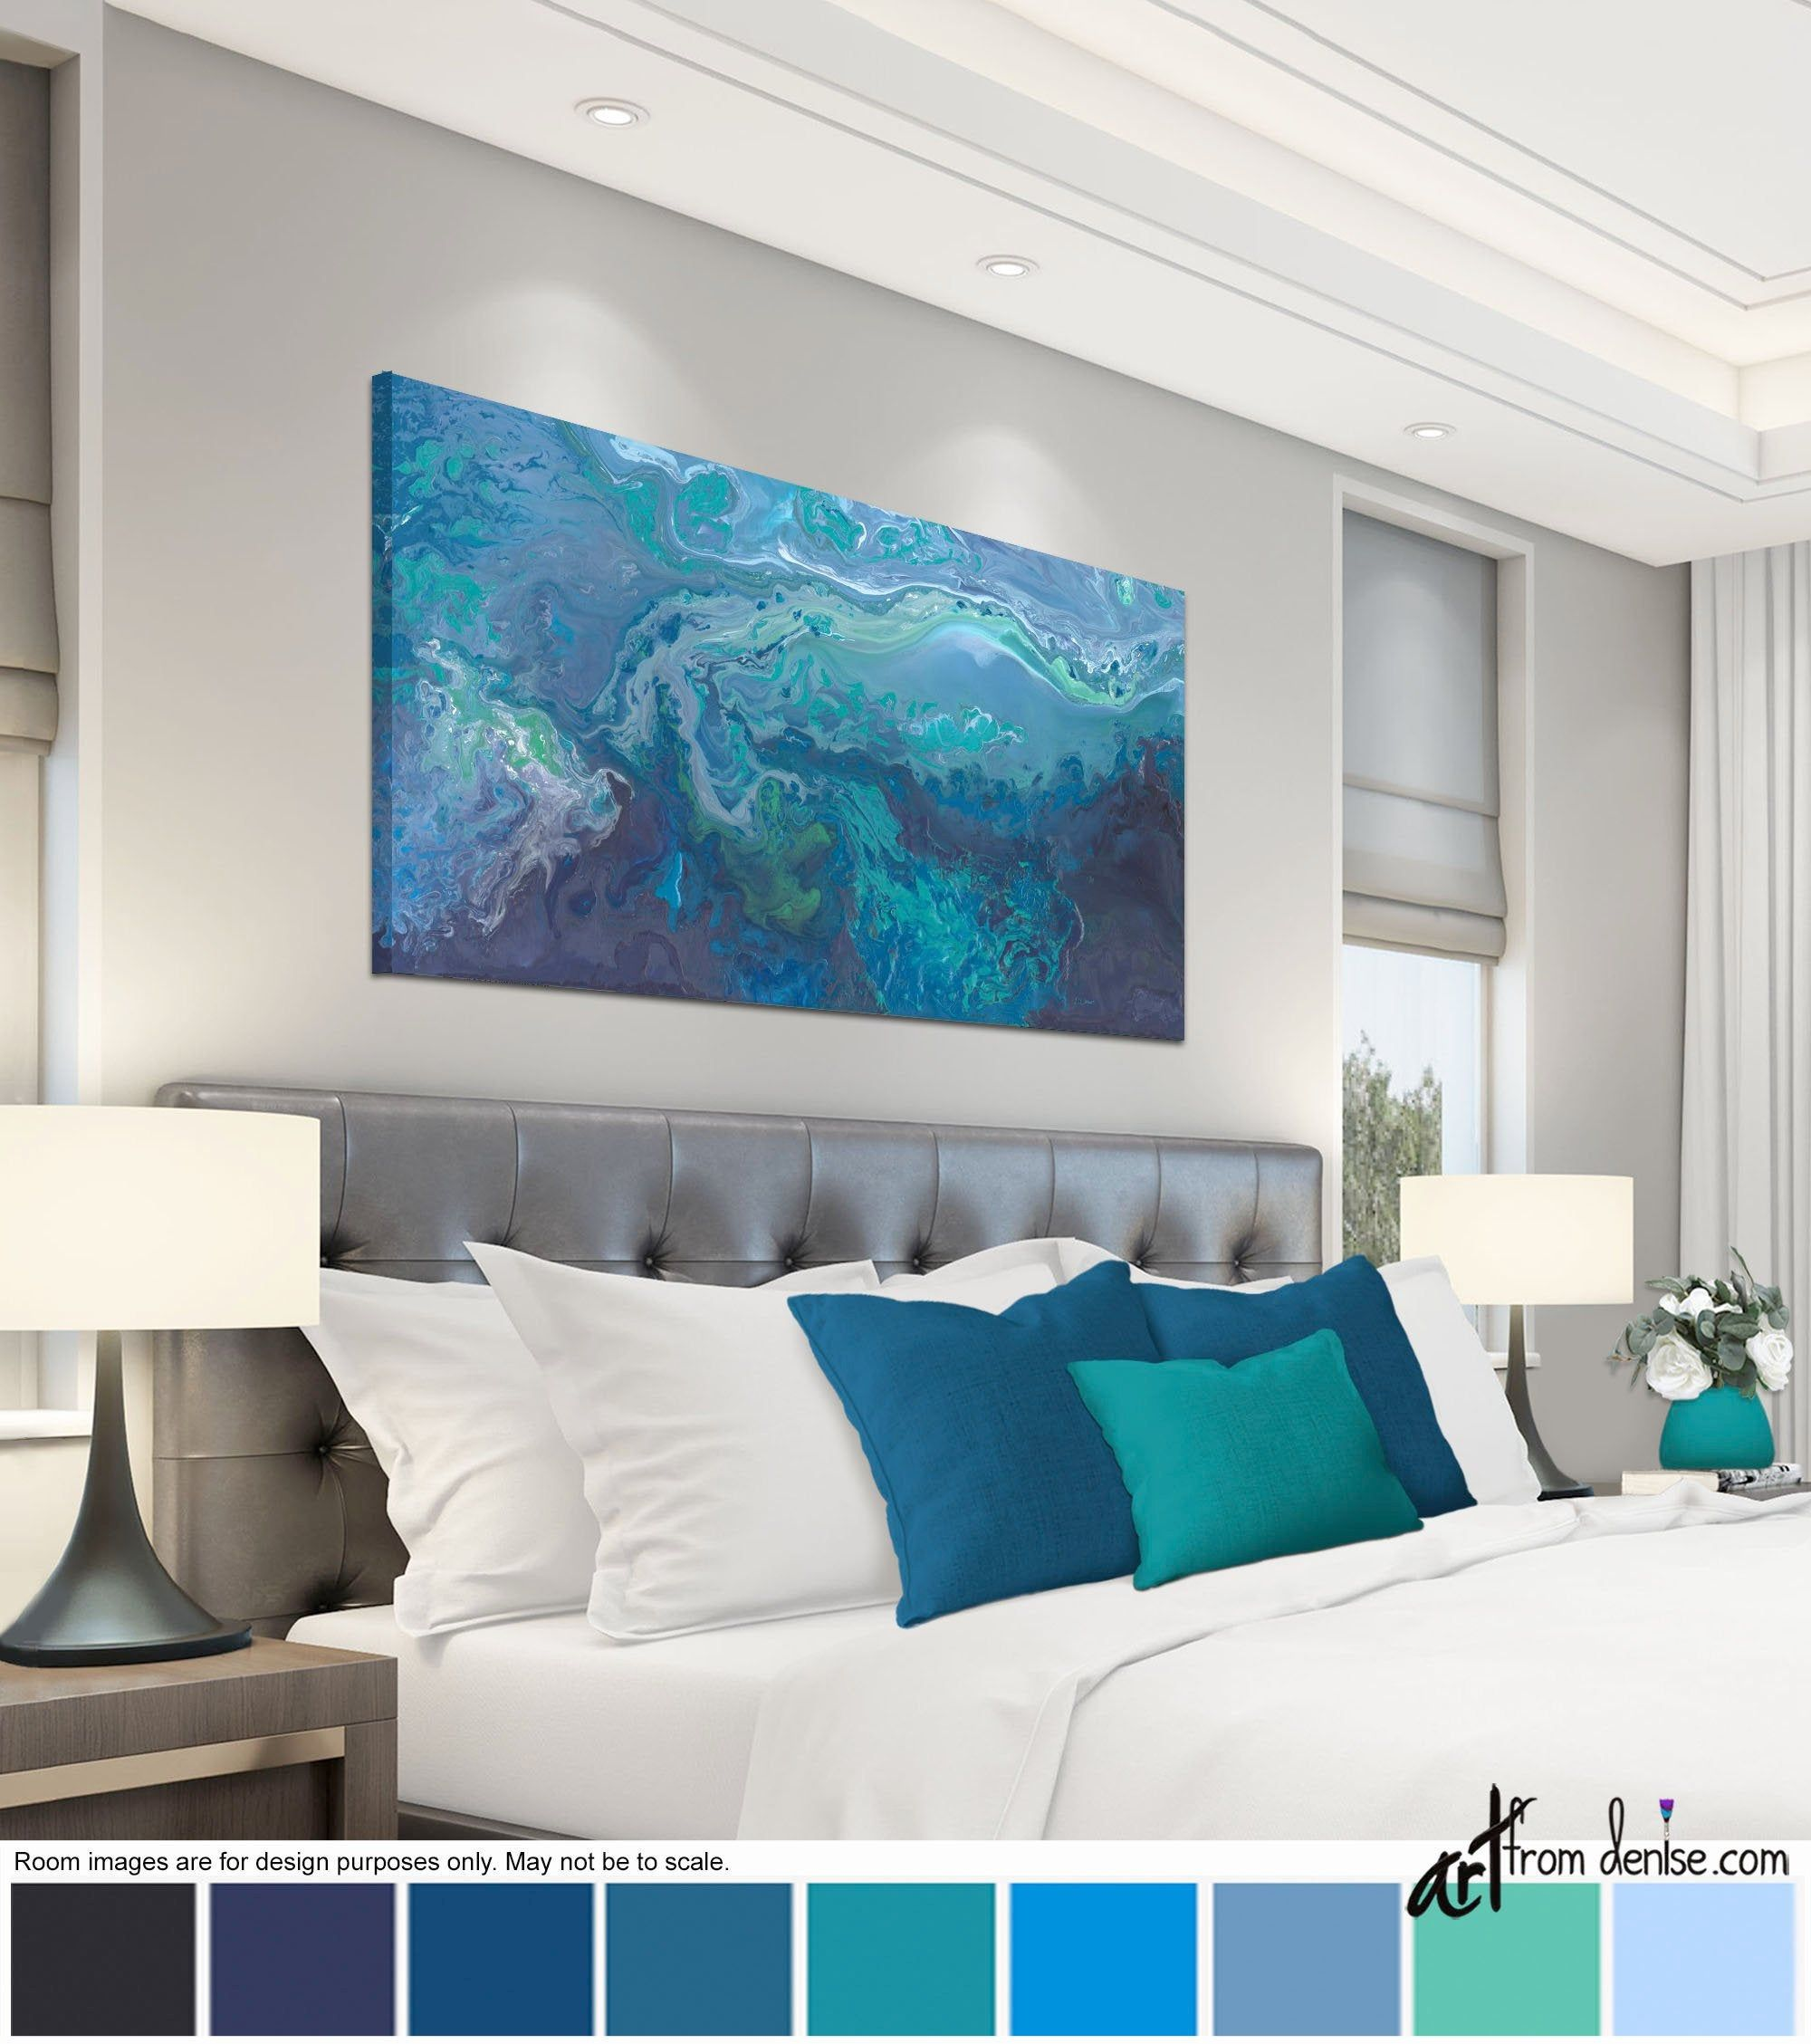 Blue Gray And Teal Wall Art Canvas Abstract Long Horizontal Etsy In 2020 Bed Decor Art Over Couch Dining Room Artwork